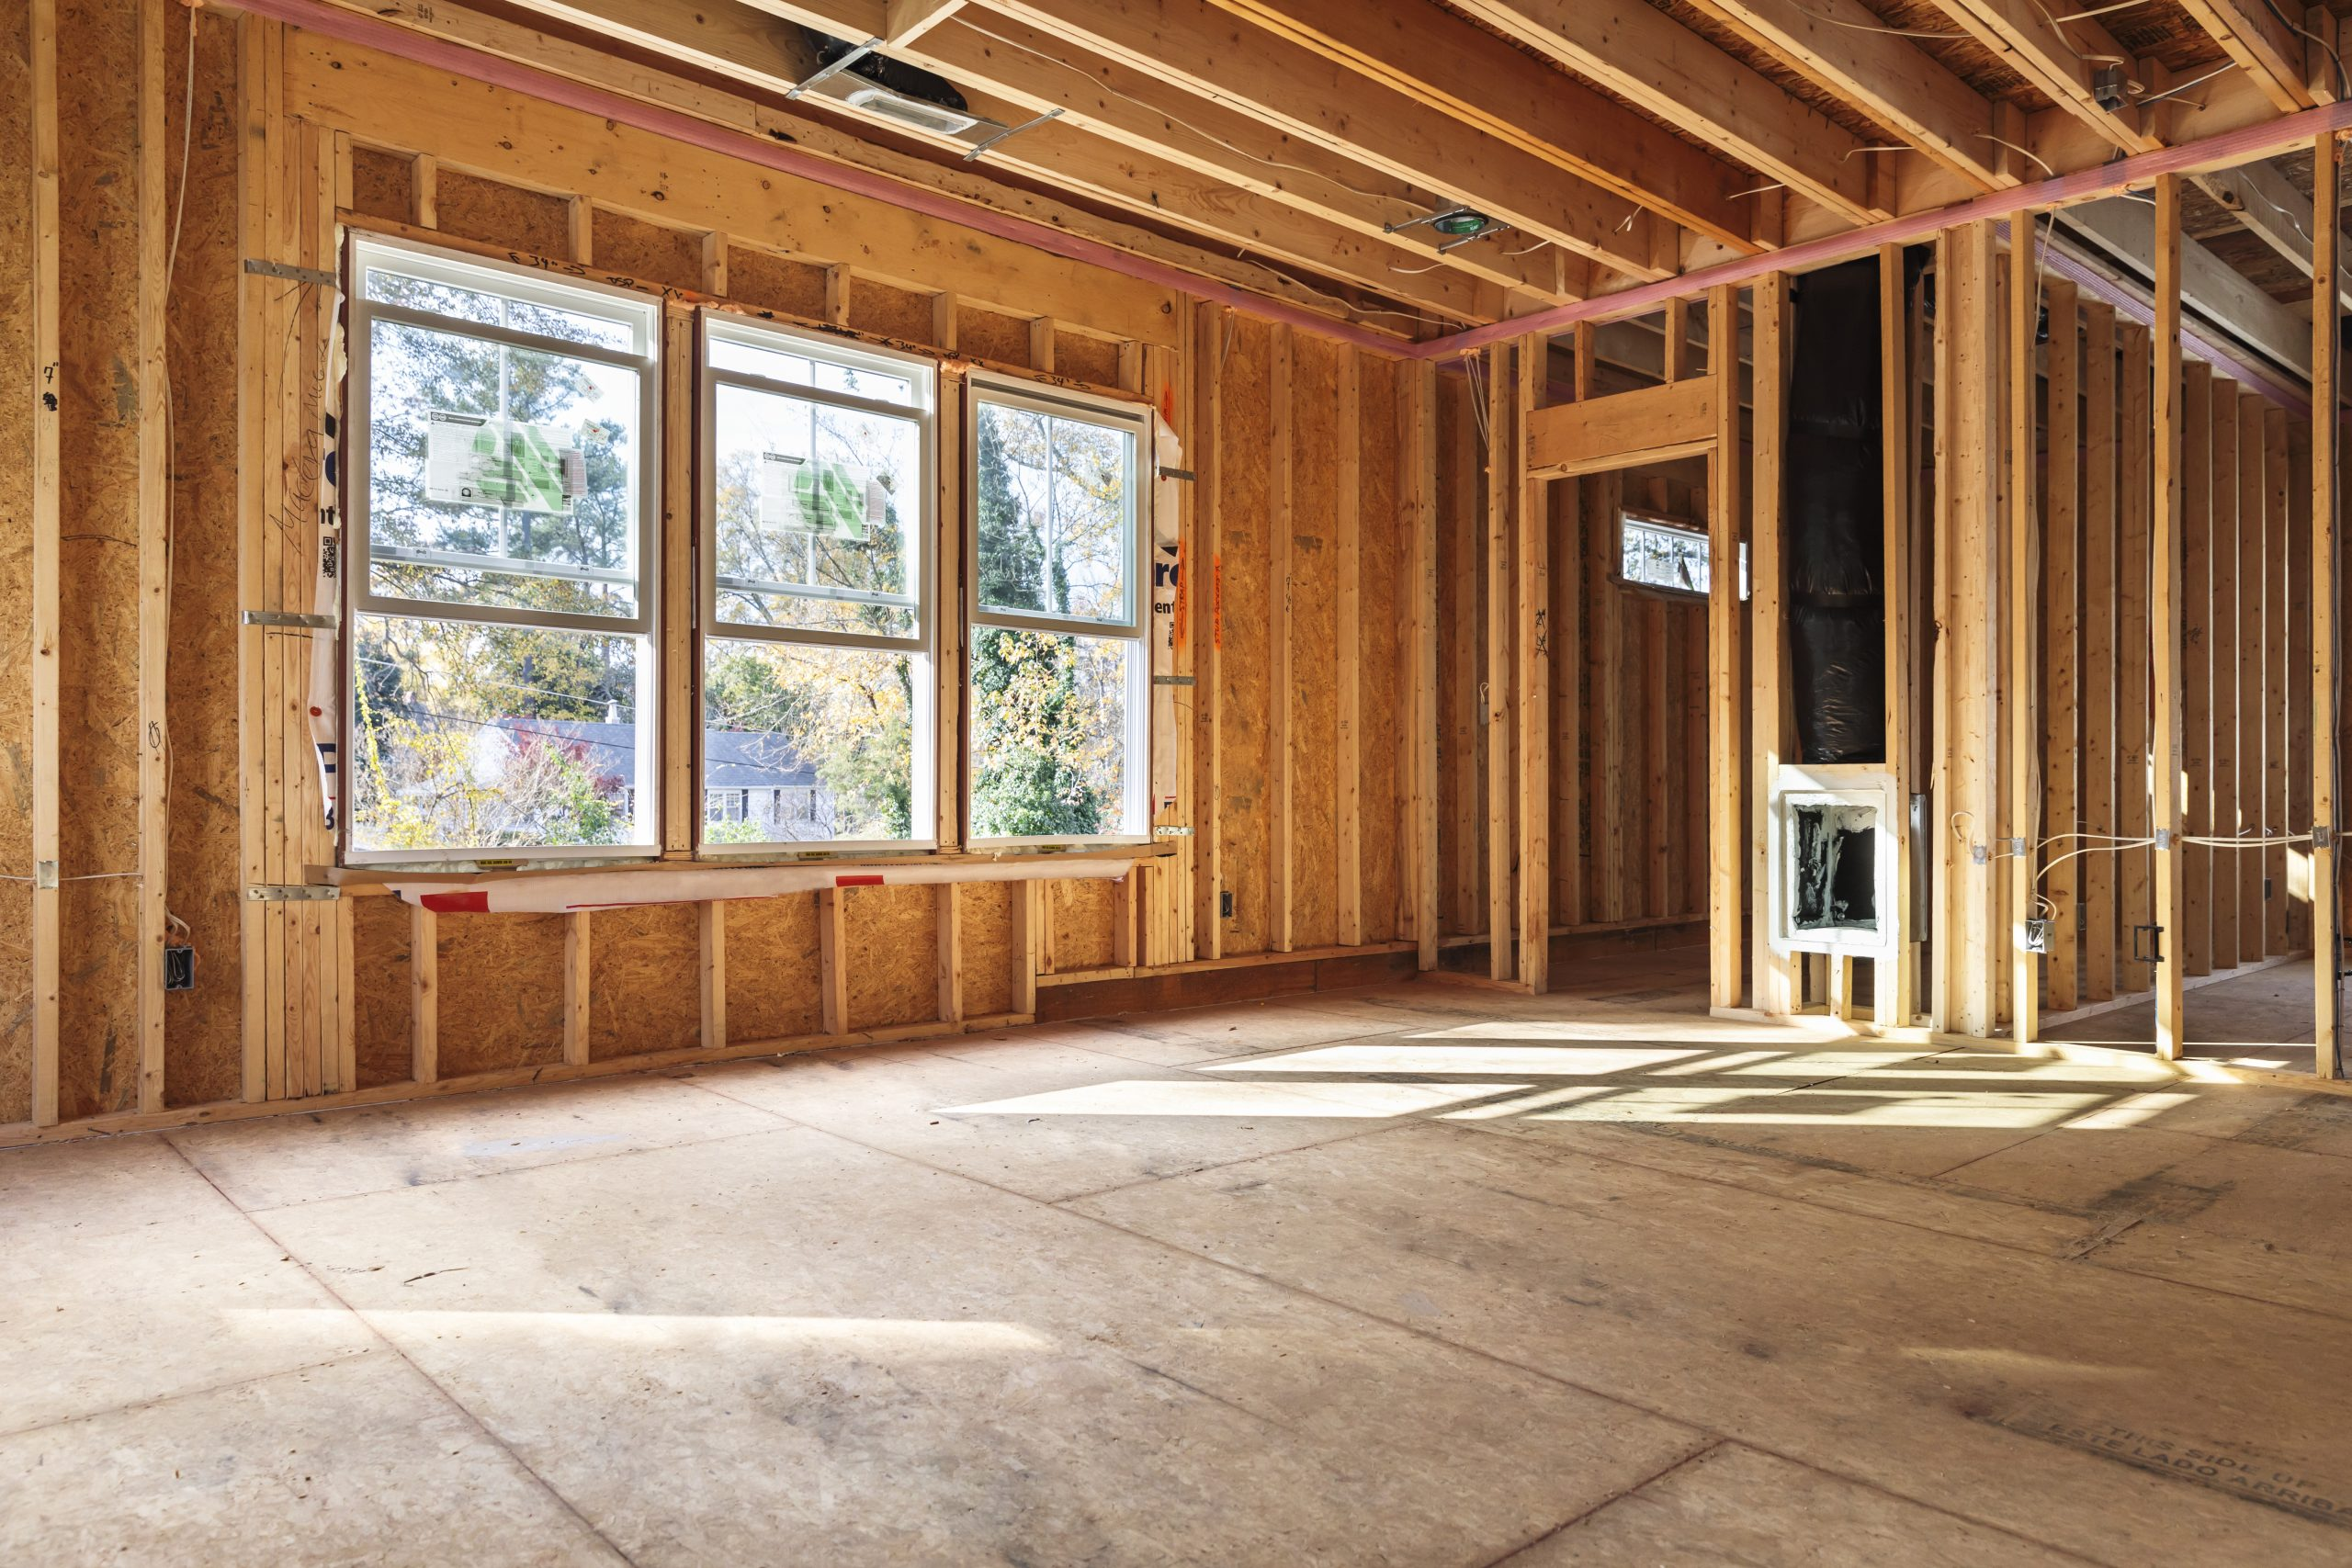 Interior,Frame,Of,A,New,House,Under,Construction,In,North